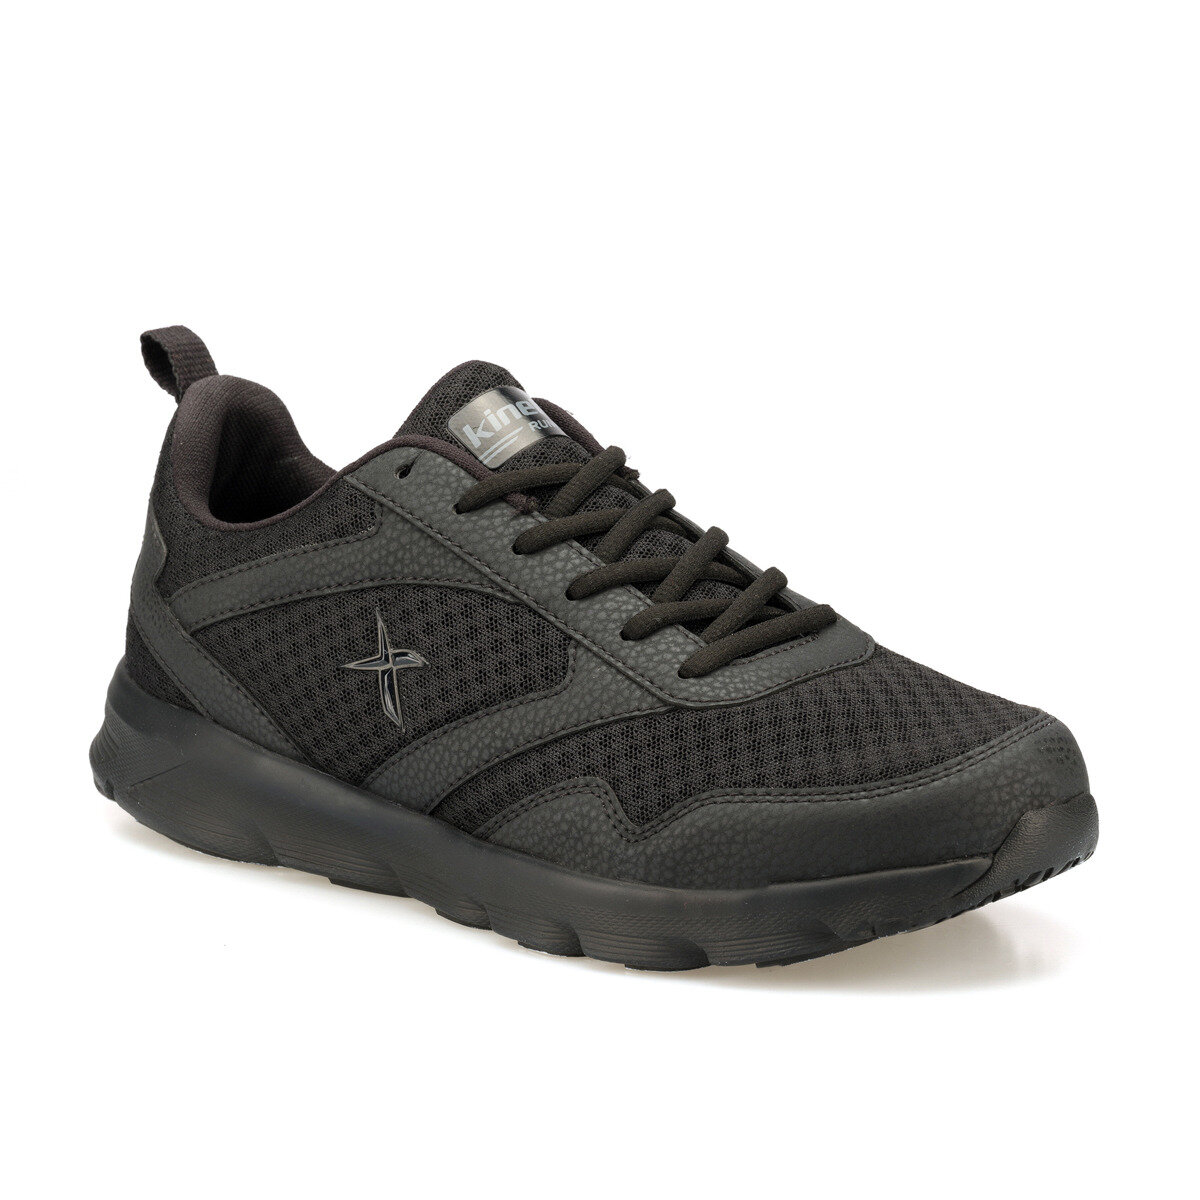 FLO MERUS Black Men 'S Running Shoe KINETIX